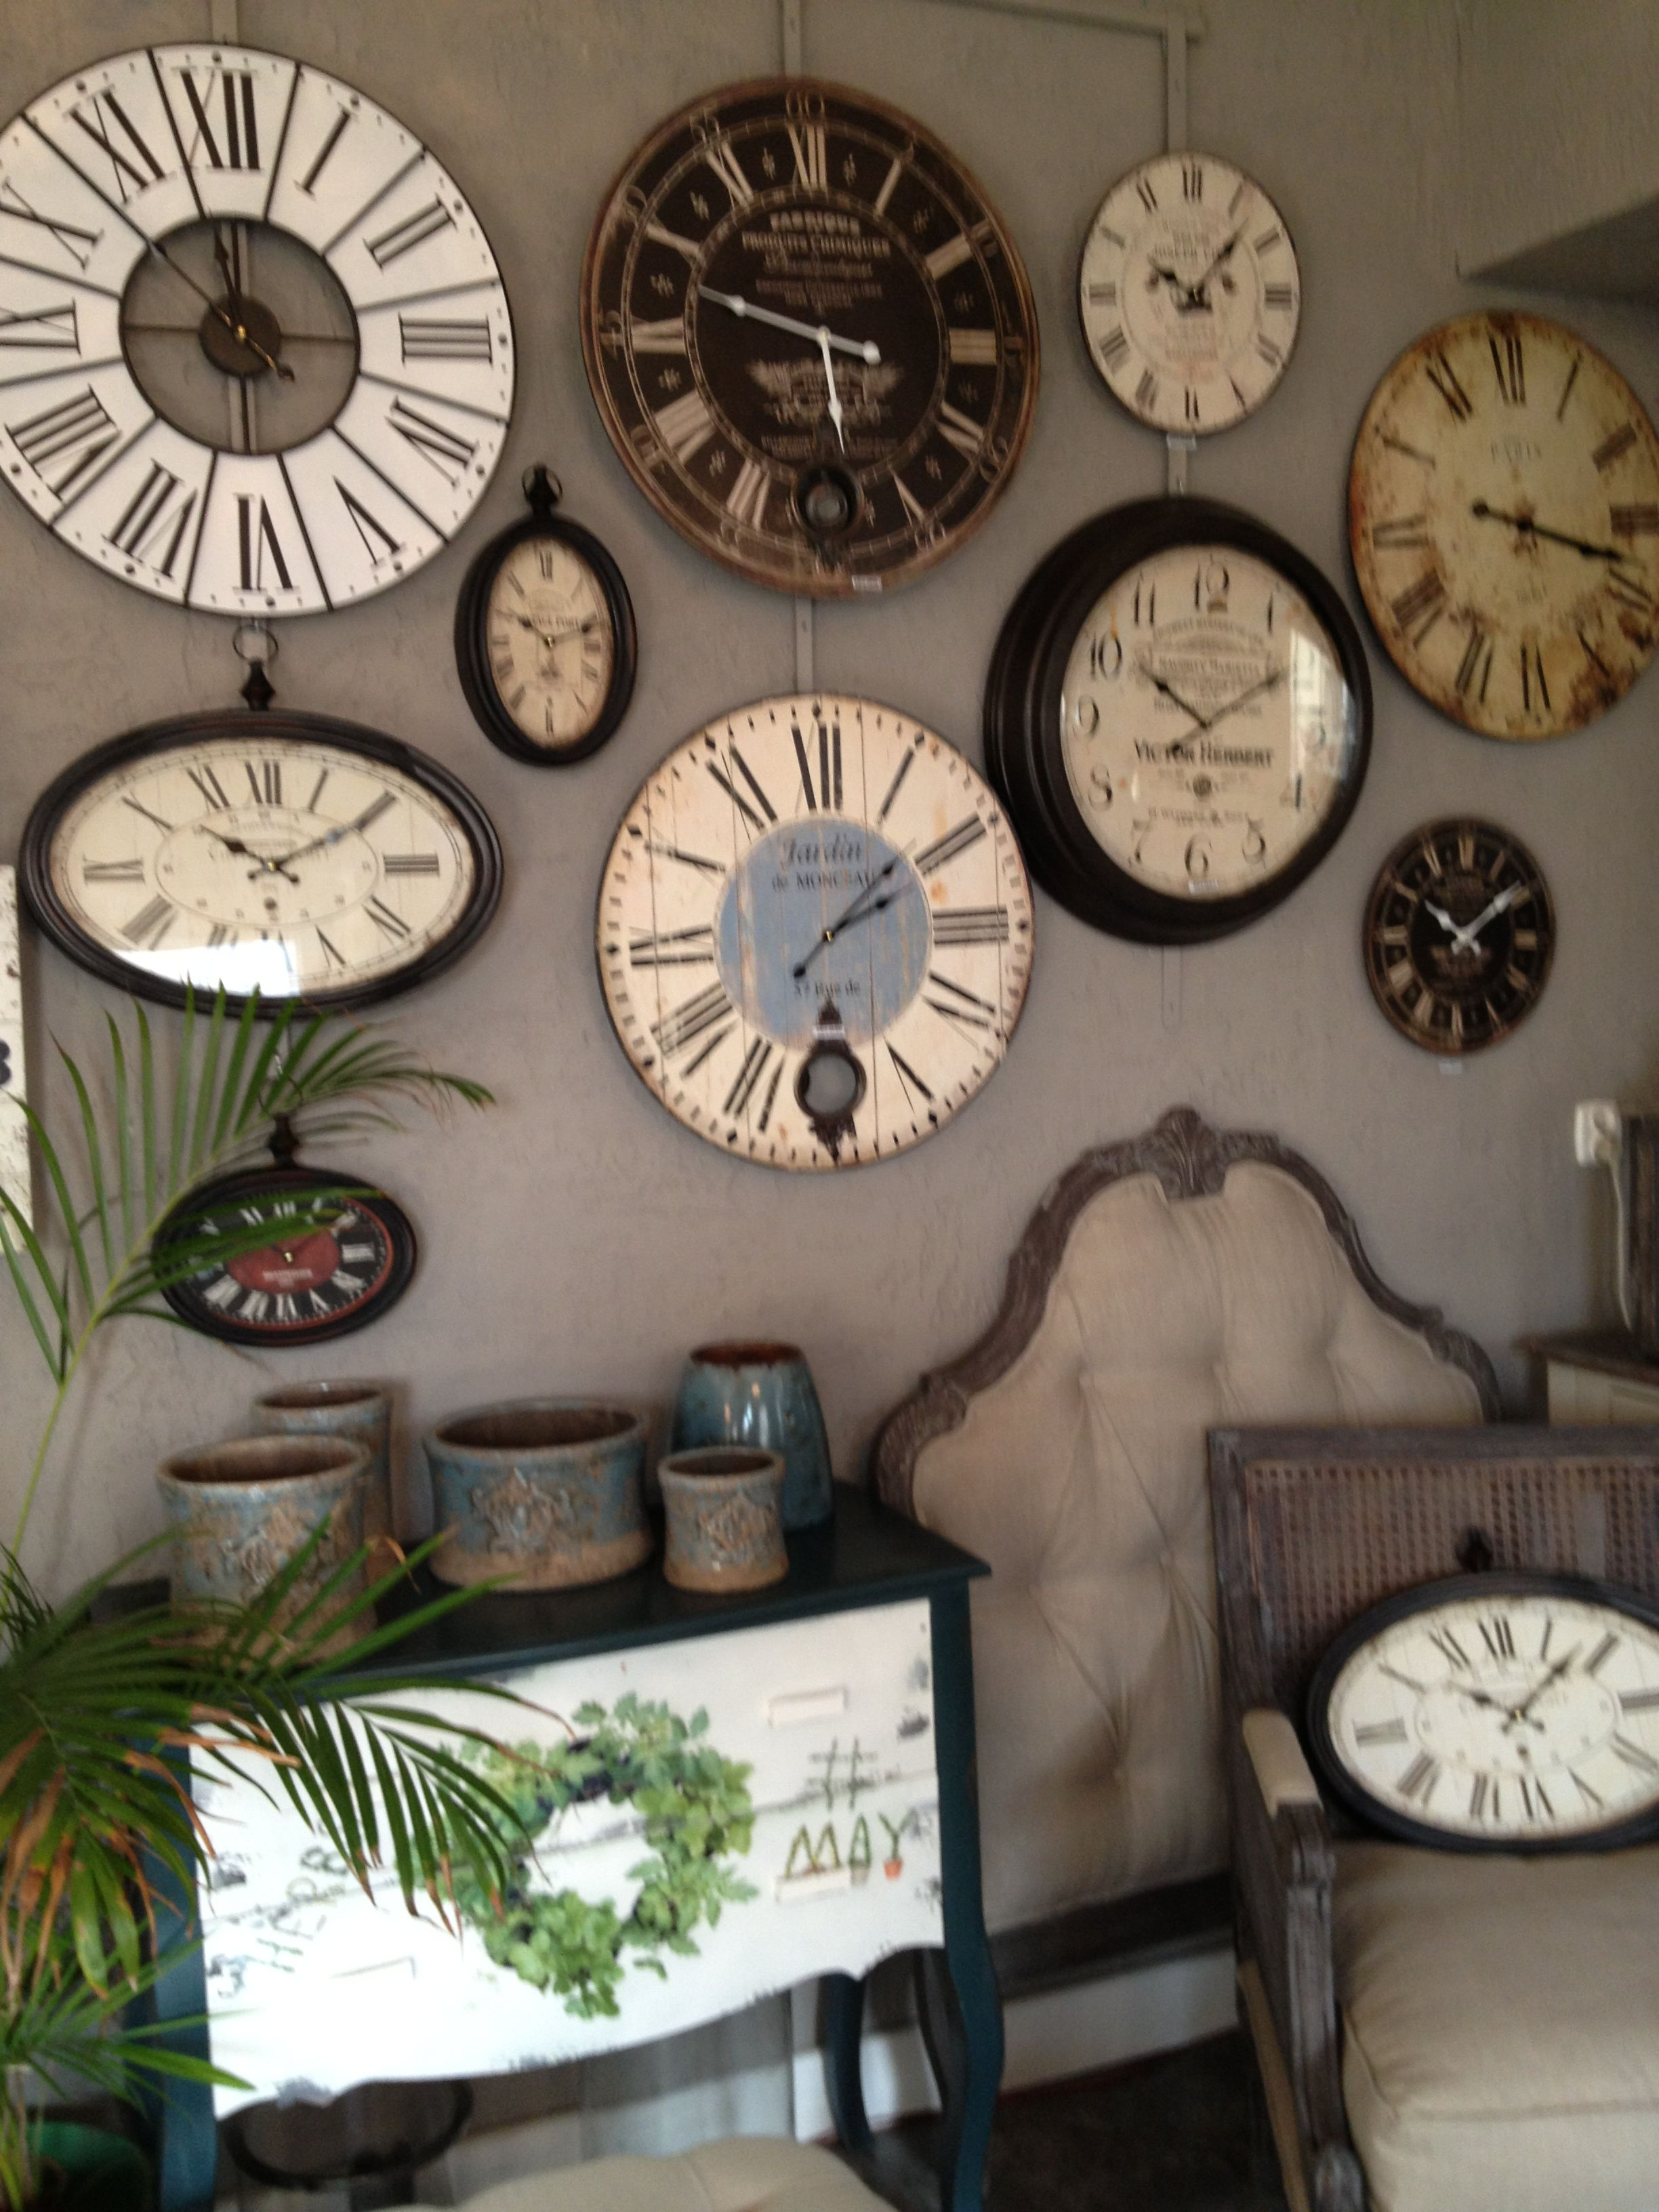 Clock Wall So Whimsical It Reminds Me Of Alice In Wonderland Wall Clock Design Clock Wall Decor Unique Wall Clocks